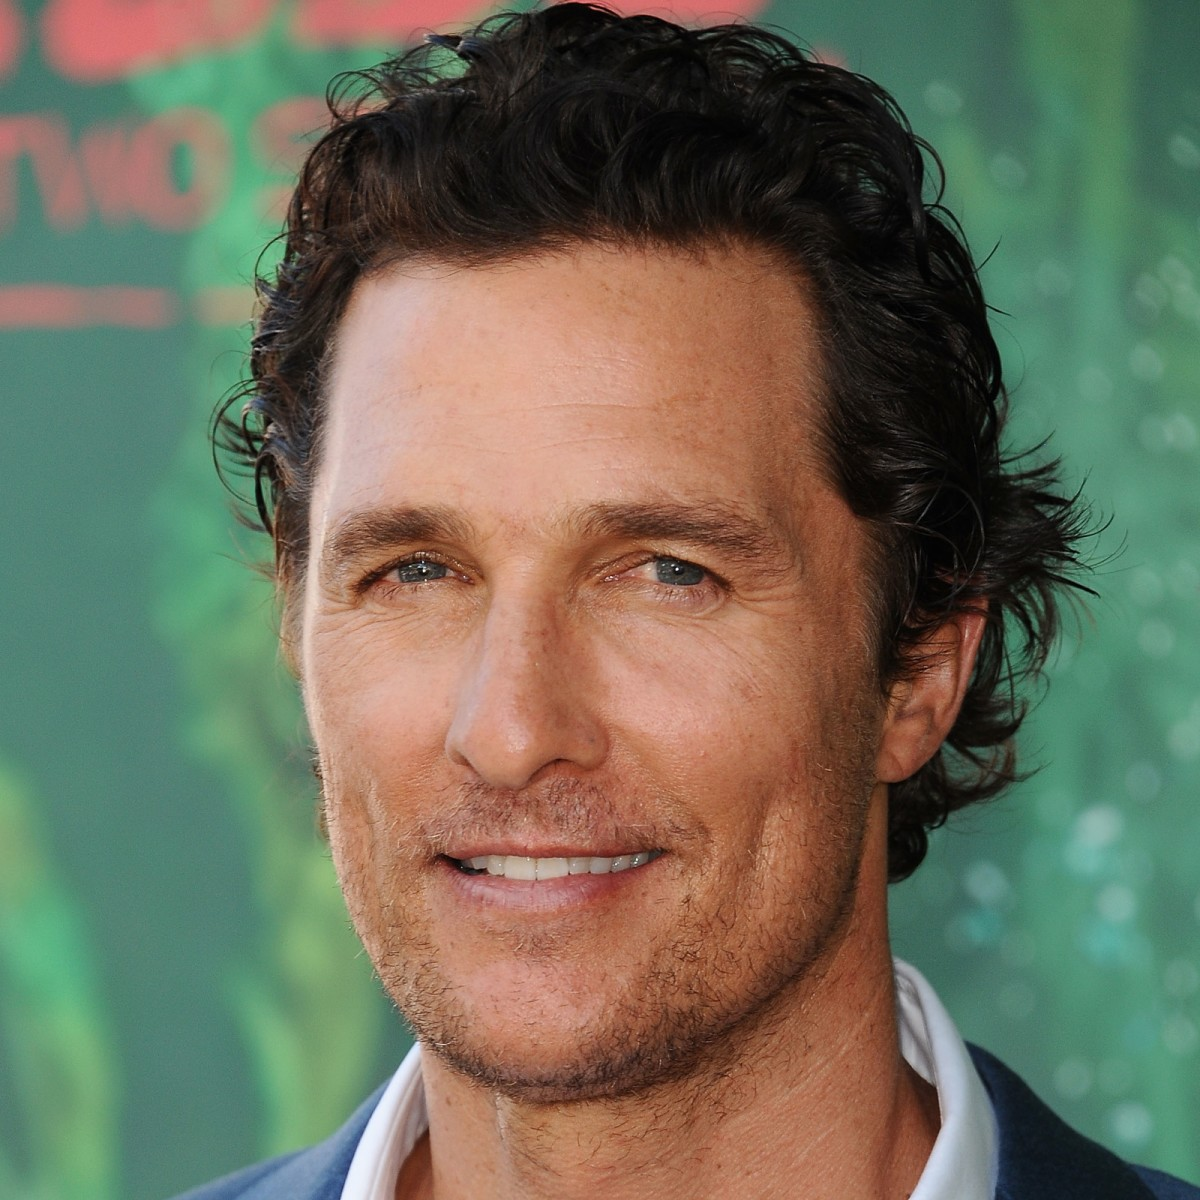 How tall is Matthew McConaughey?